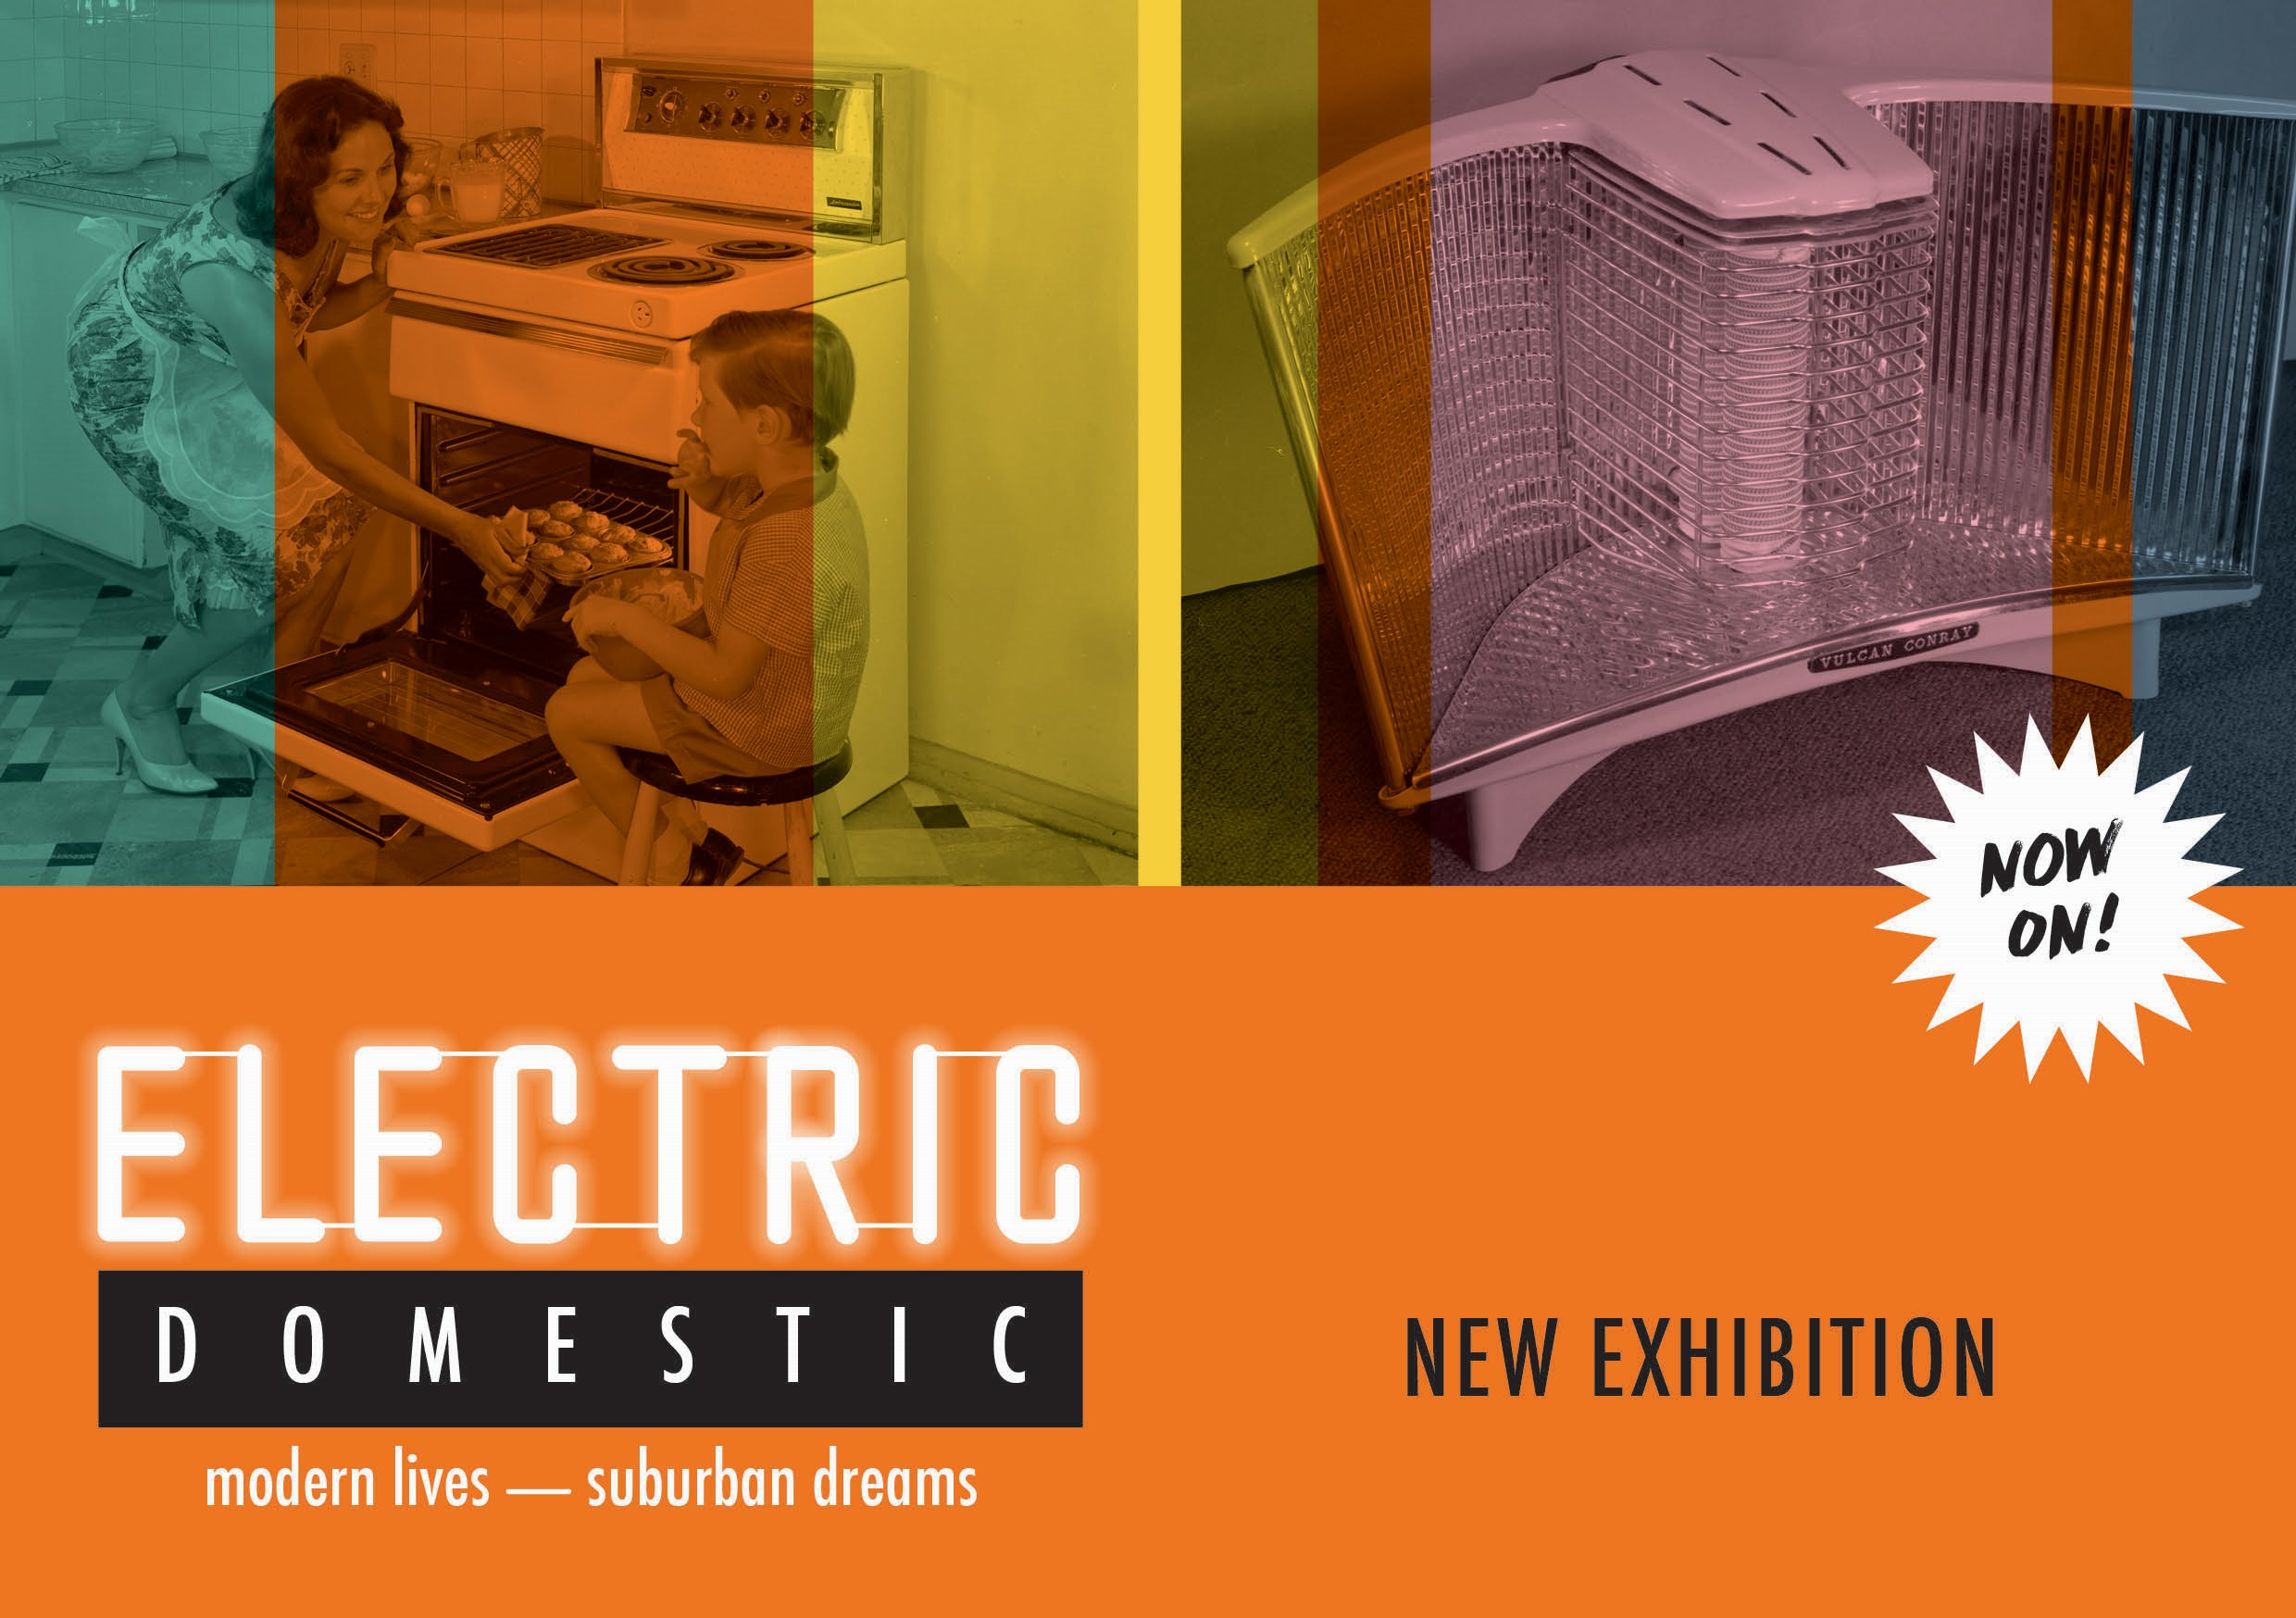 Electric Domestic - Suburban dreams, modern lives